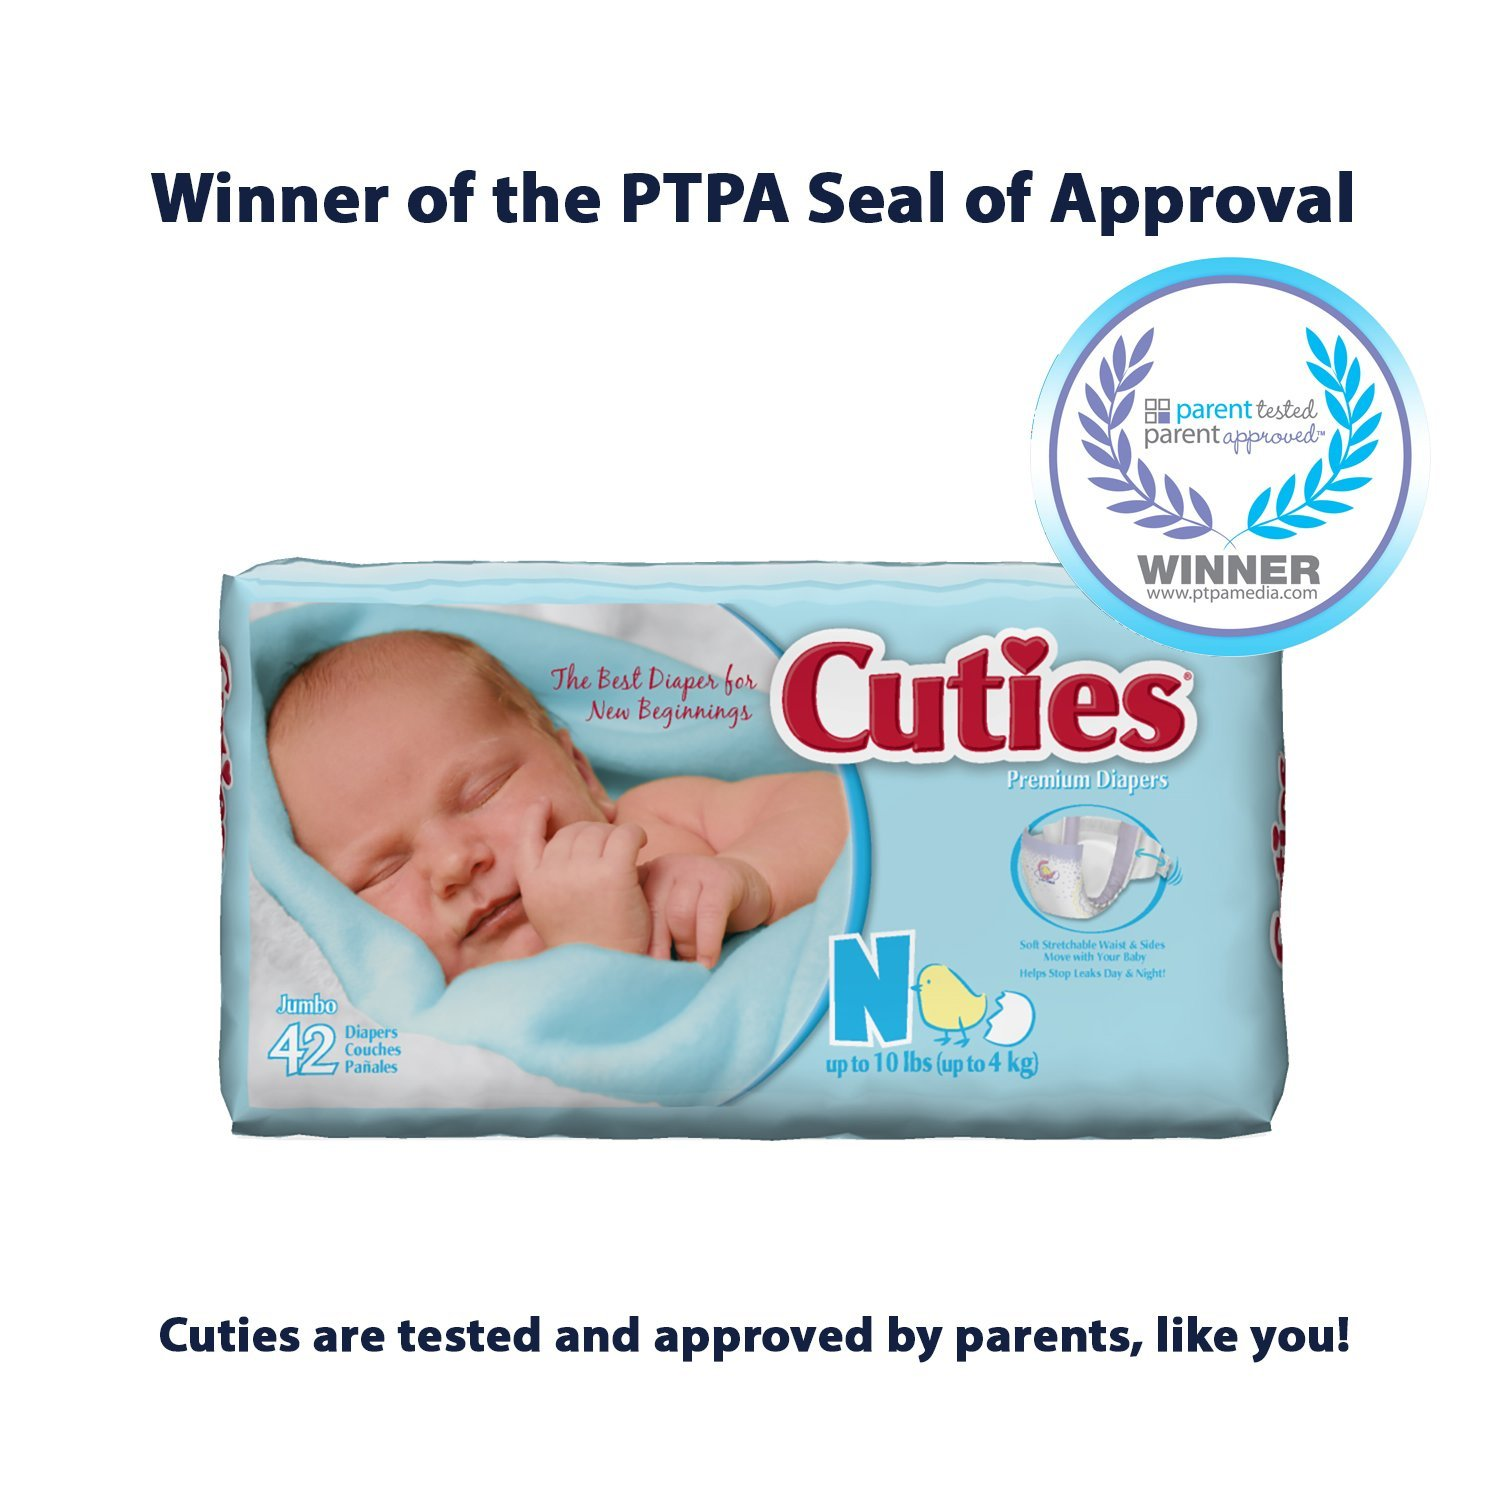 Amazon.com: Prevail Cuties Baby Diapers Size 4, 22-37 lbs. [Bag of 31] by First Quality: Health & Personal Care